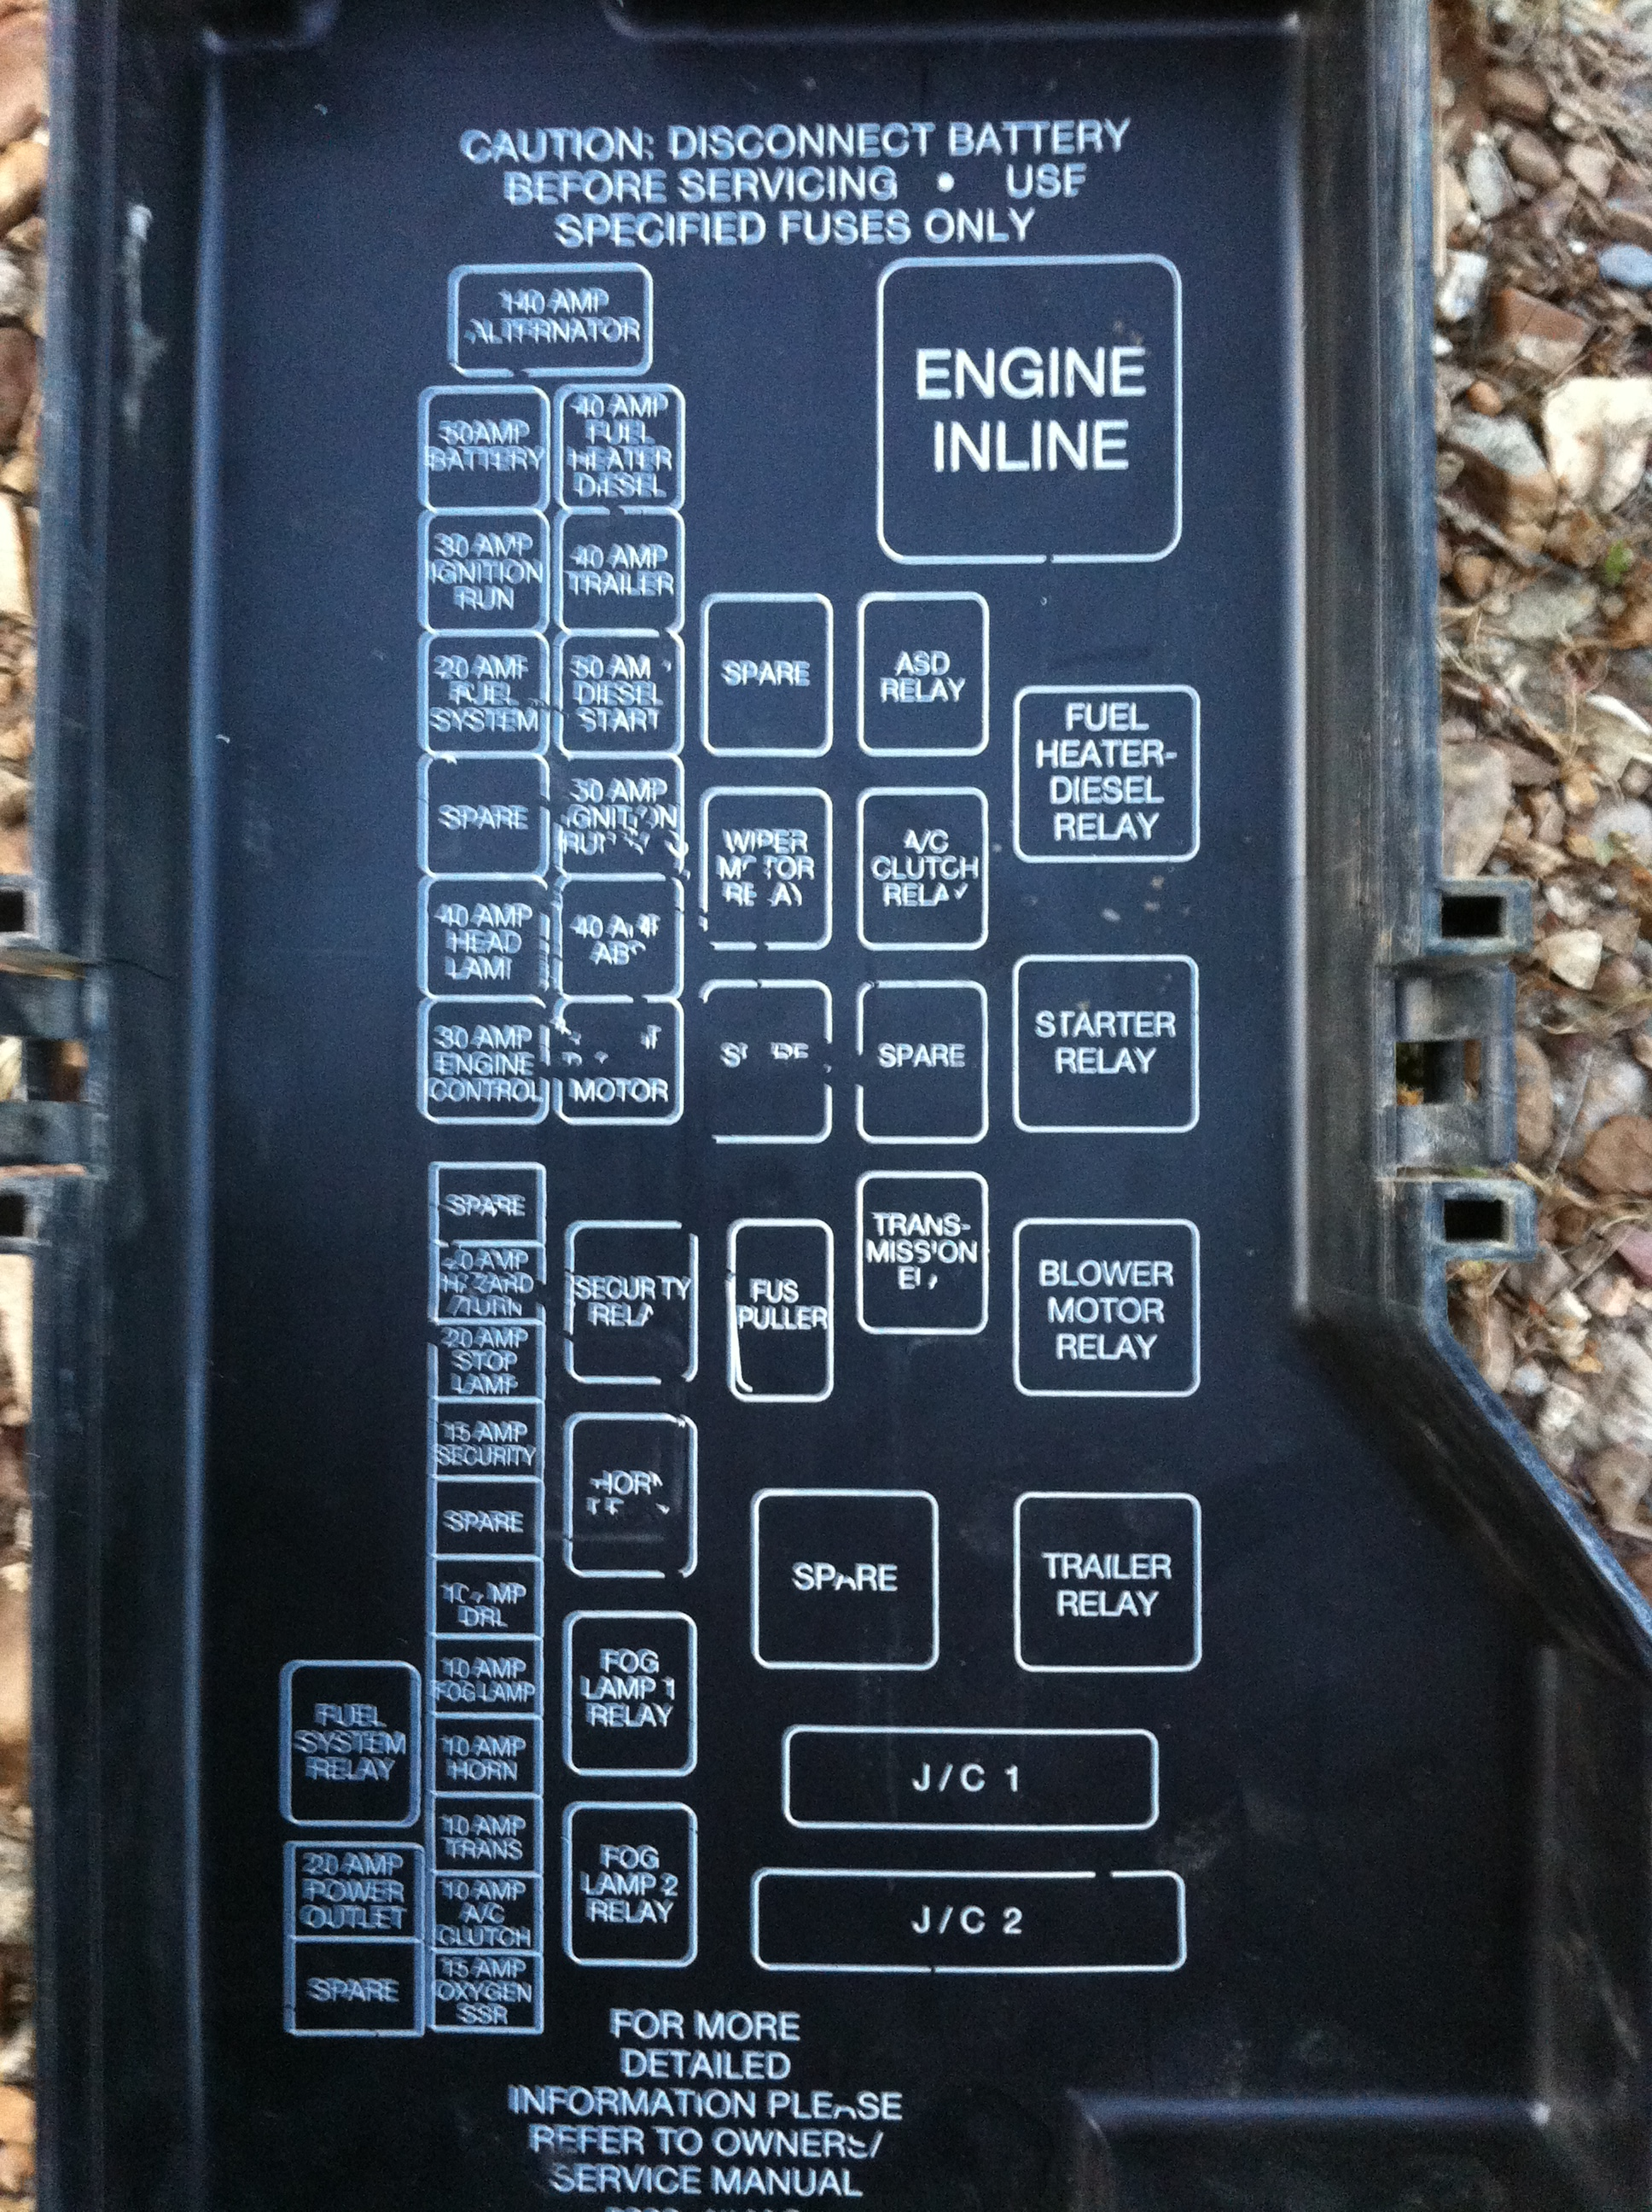 2012 05 22_134436_006 98 dodge ram fuse box diagram 08 dodge ram fuse box diagram \u2022 free dodge ram 2500 fuse box at crackthecode.co